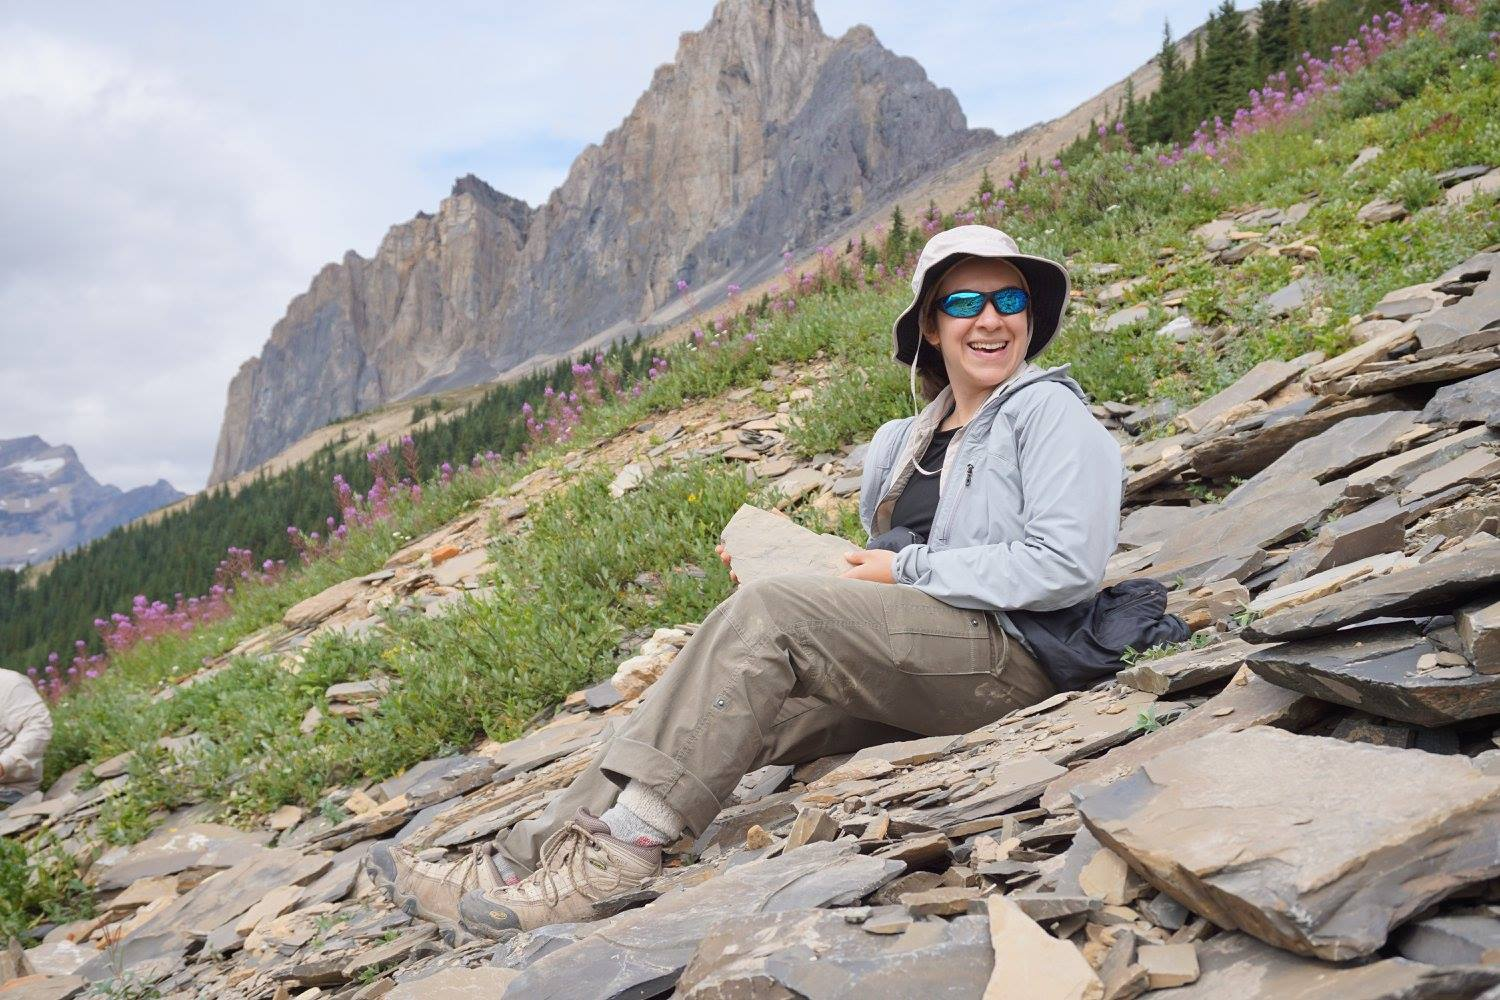 Finding trilobites and other Cambrian fossils (~540 million years old!) at the top of Wapta Mountain in Yoho National Park, British Columbia, Canada.